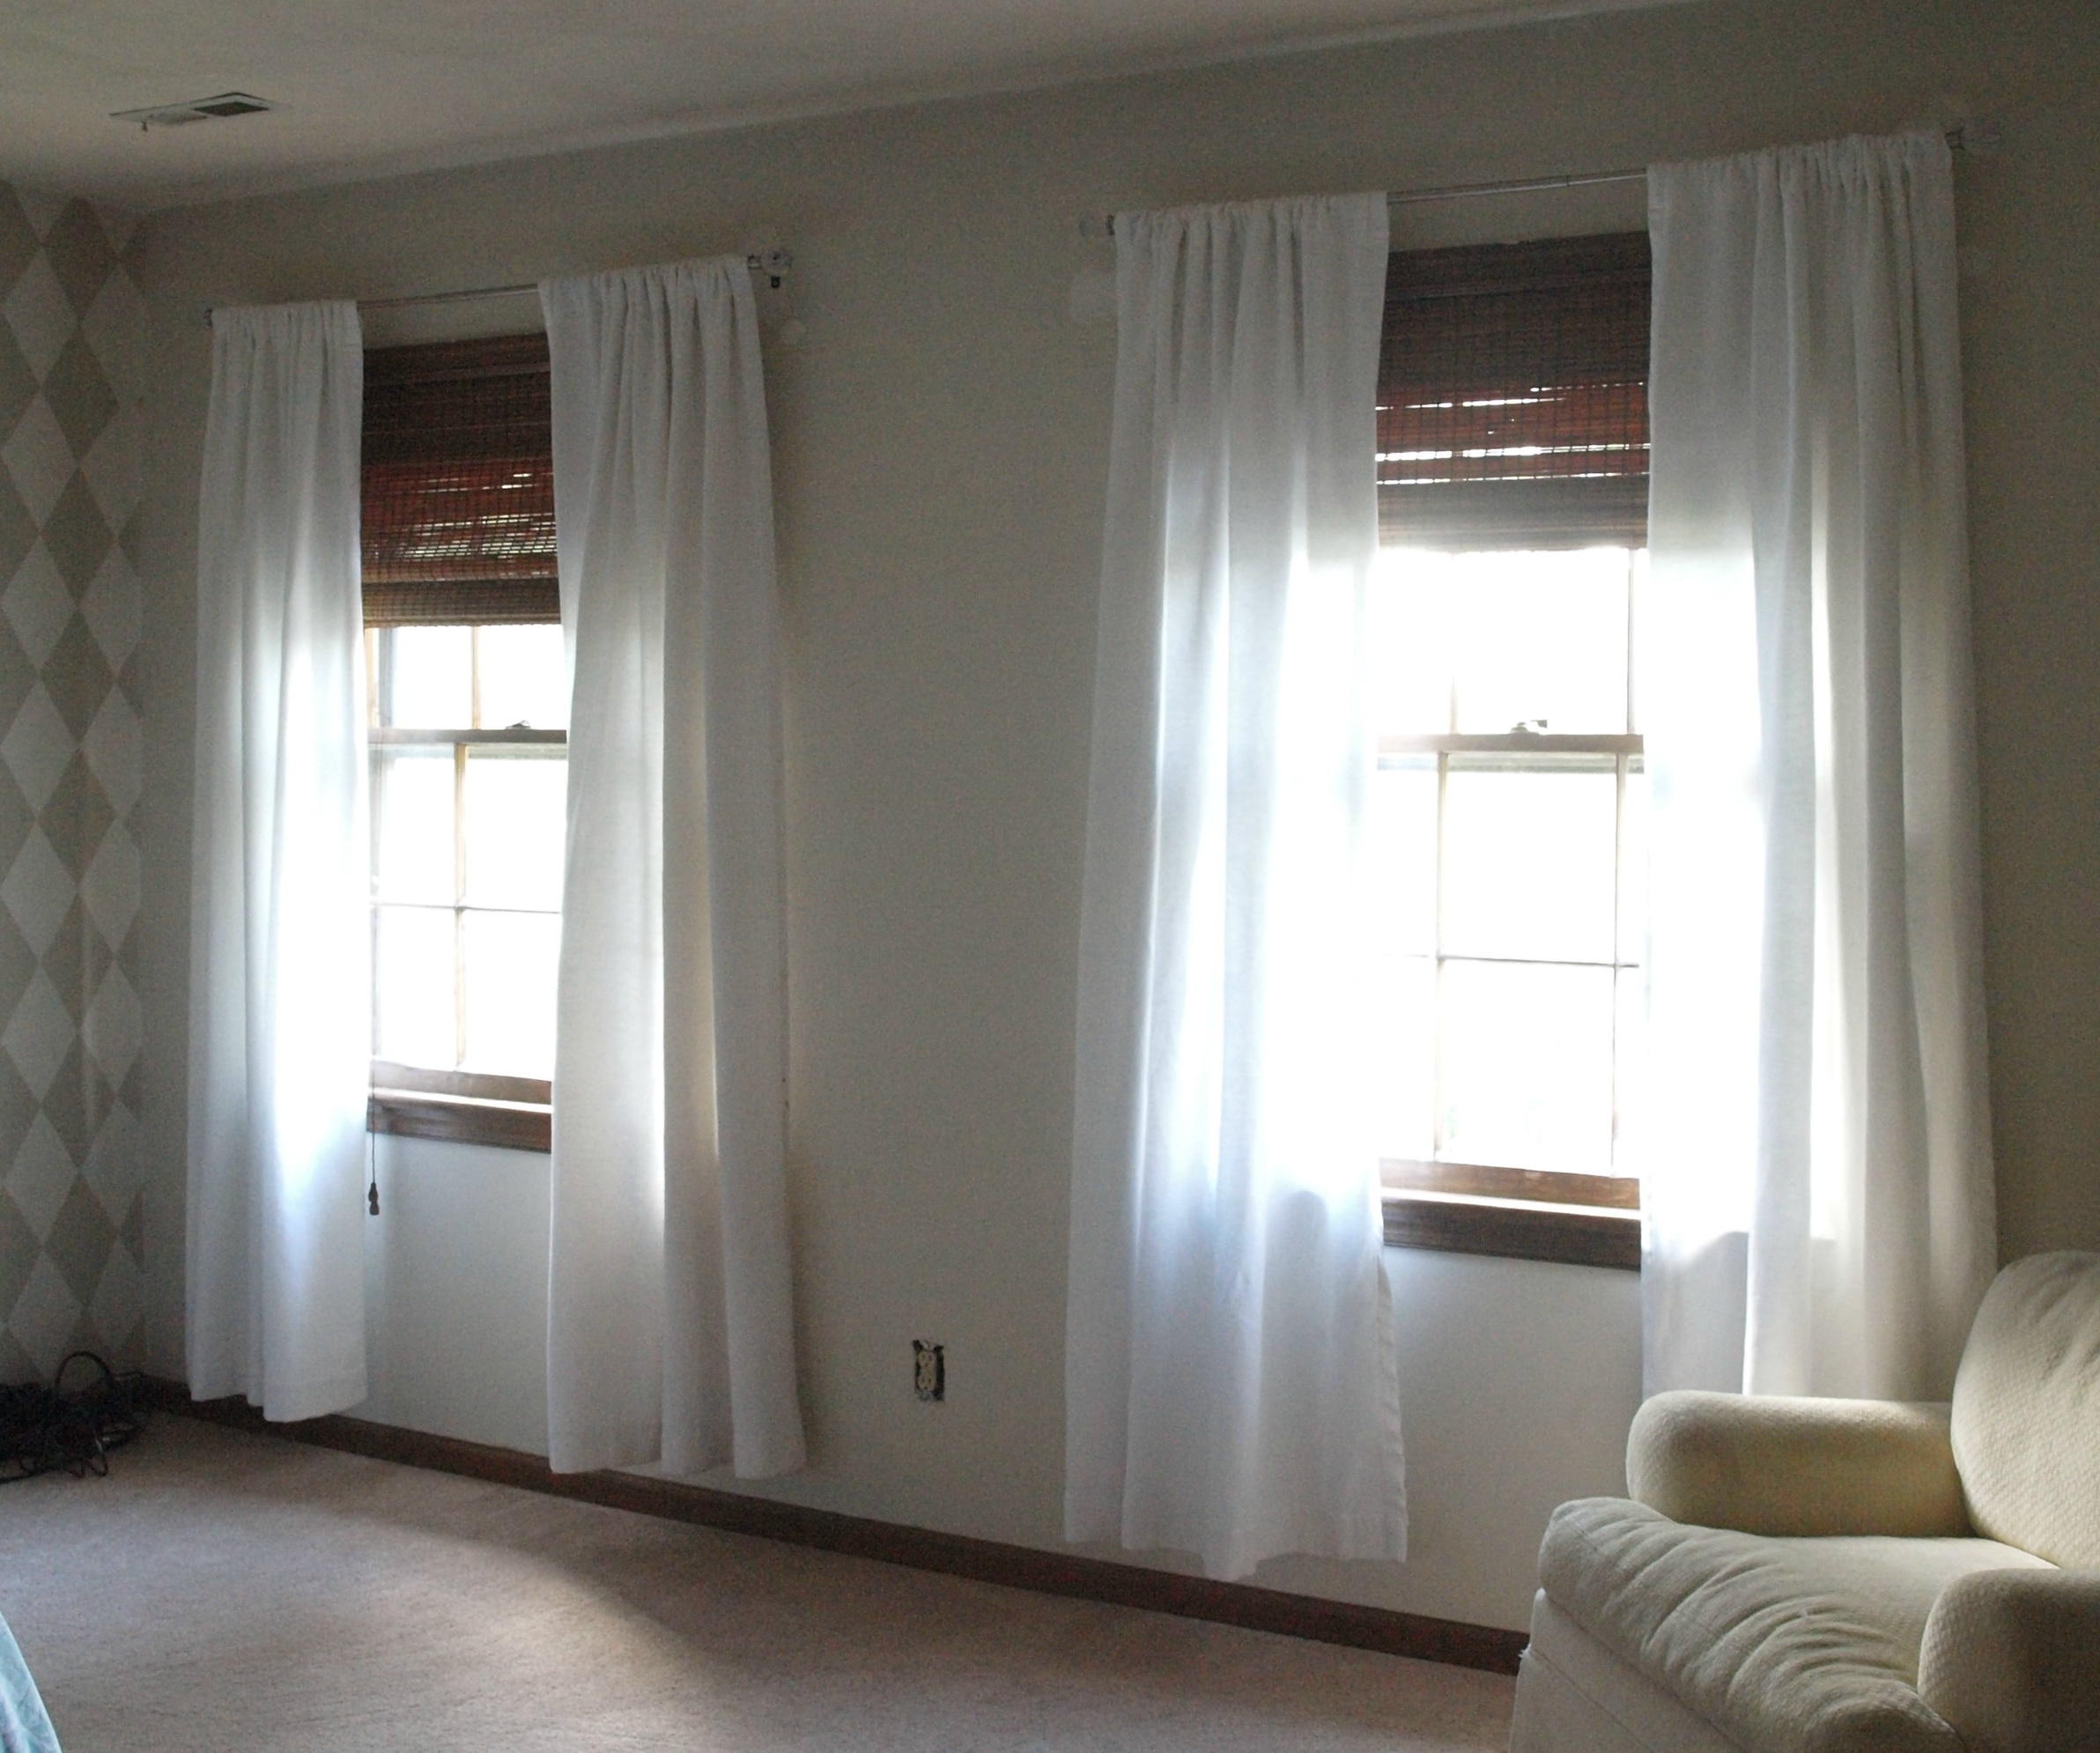 makeover ikea progress plain lenda diy from striped nursery curtains white curtain the inspired suddenly